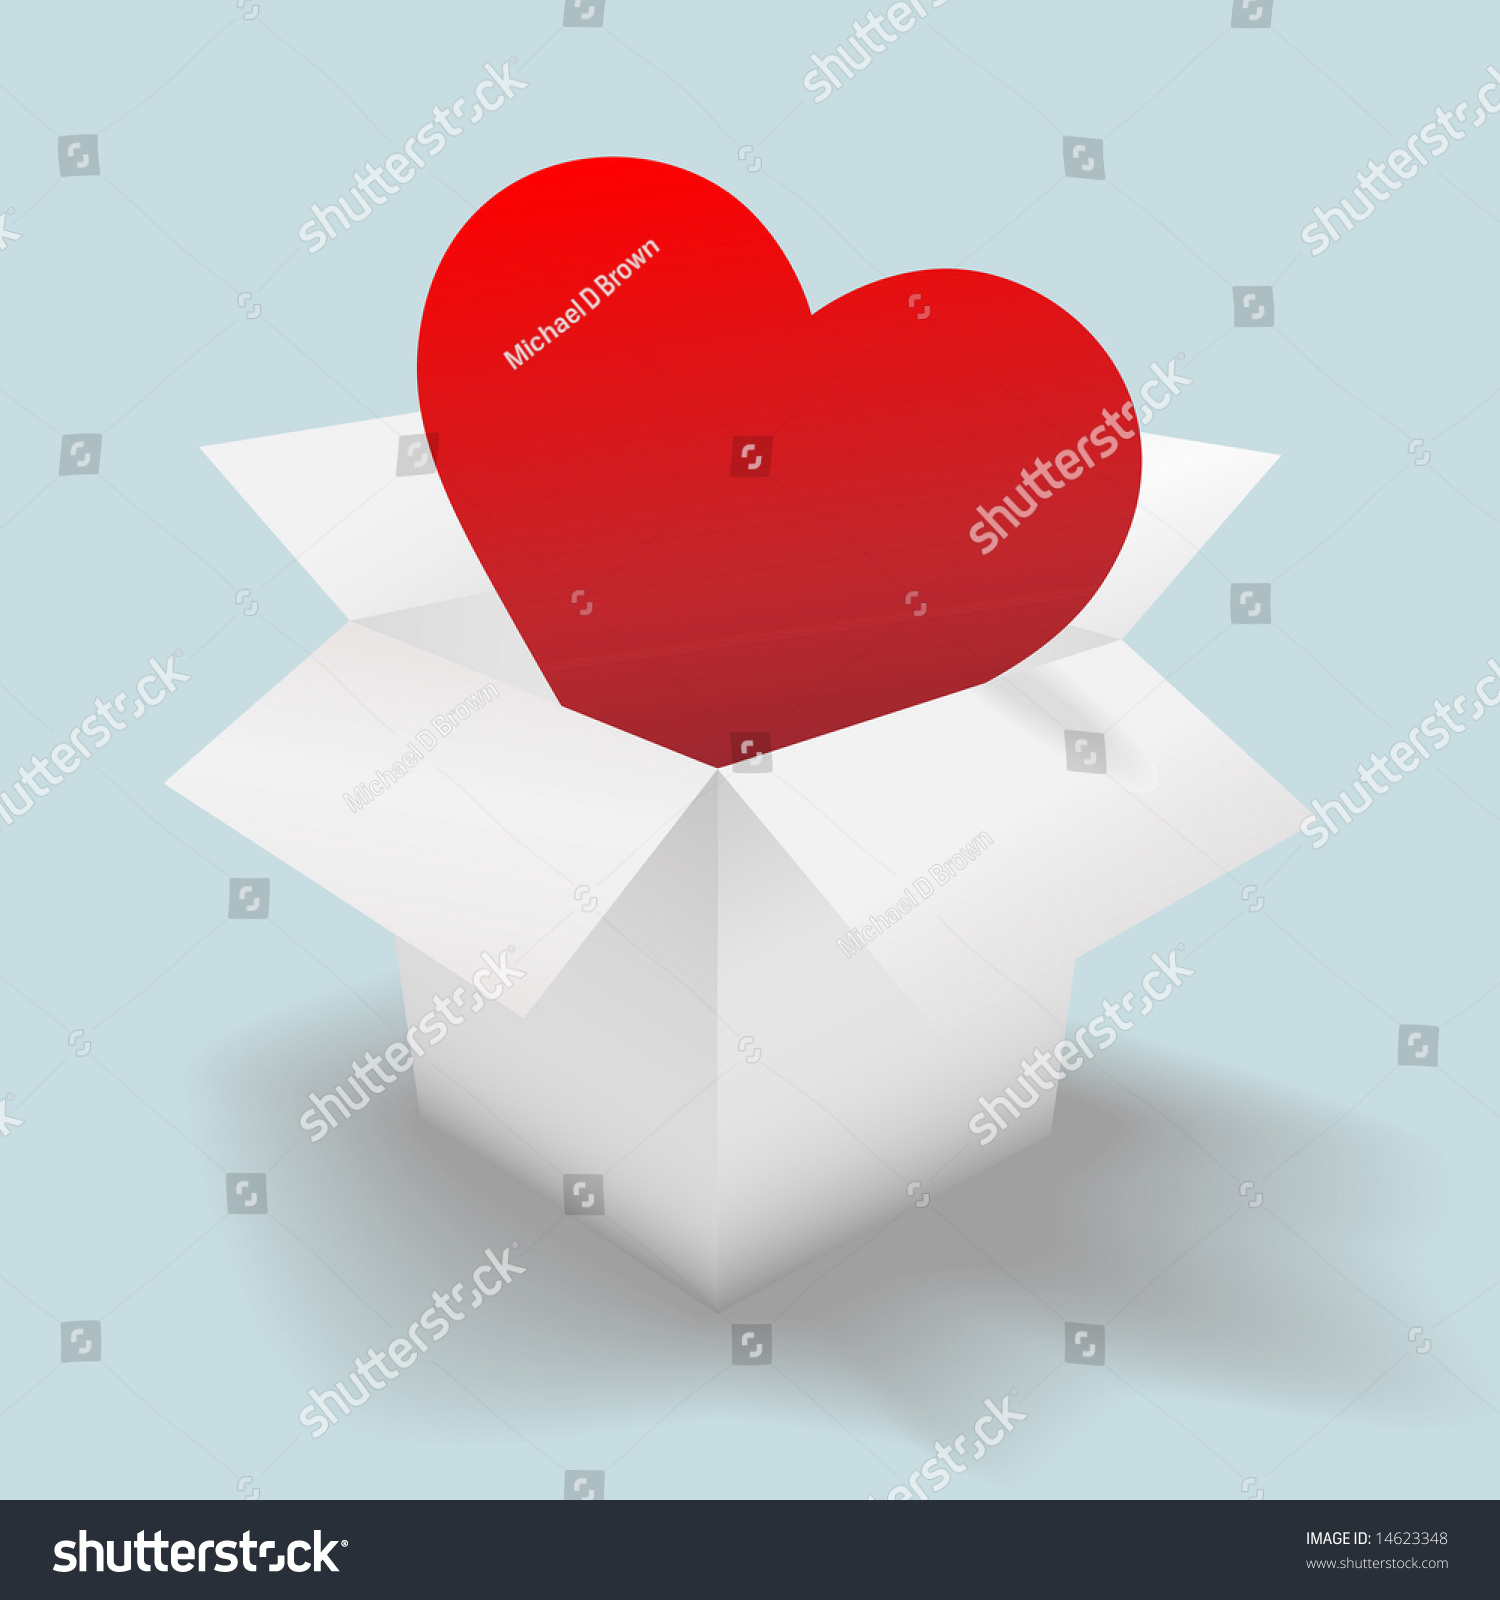 Deliver open heart clean white shipping stock vector 14623348 deliver an open heart in a clean white shipping carton a valentine or symbol of buycottarizona Gallery